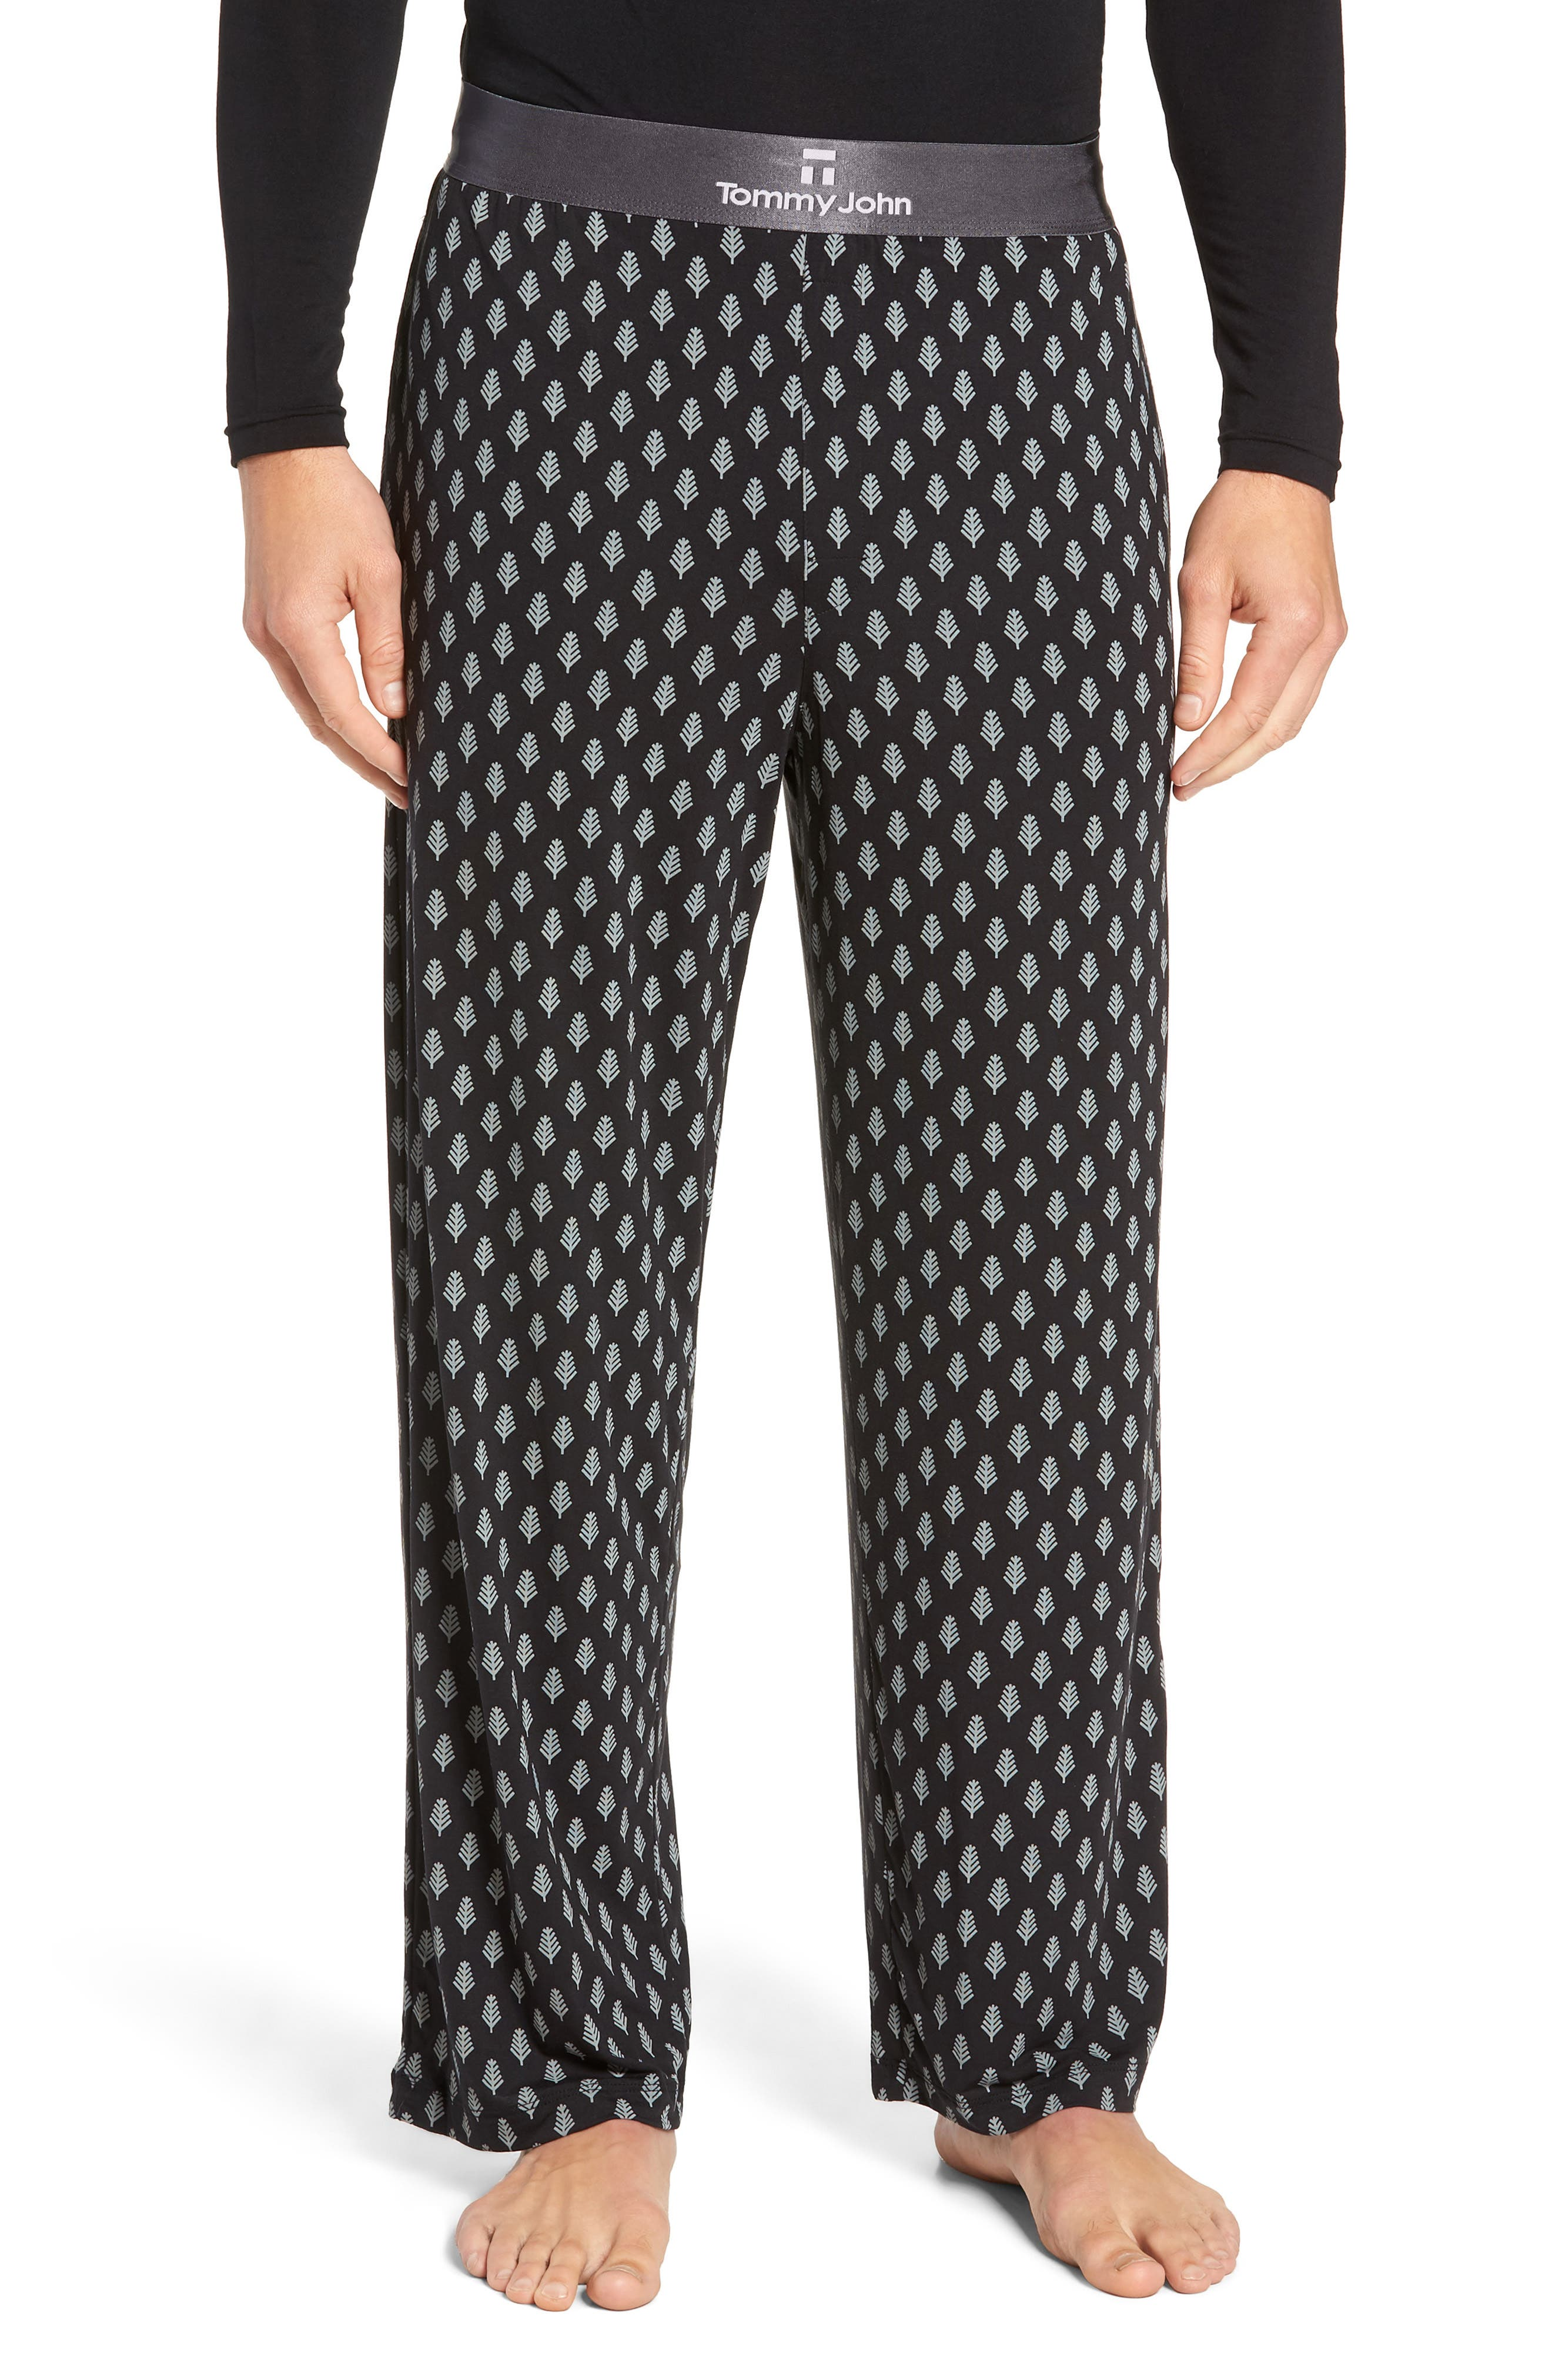 Second Skin Lounge Pants,                             Main thumbnail 1, color,                             BLACK SNOWY FOREST